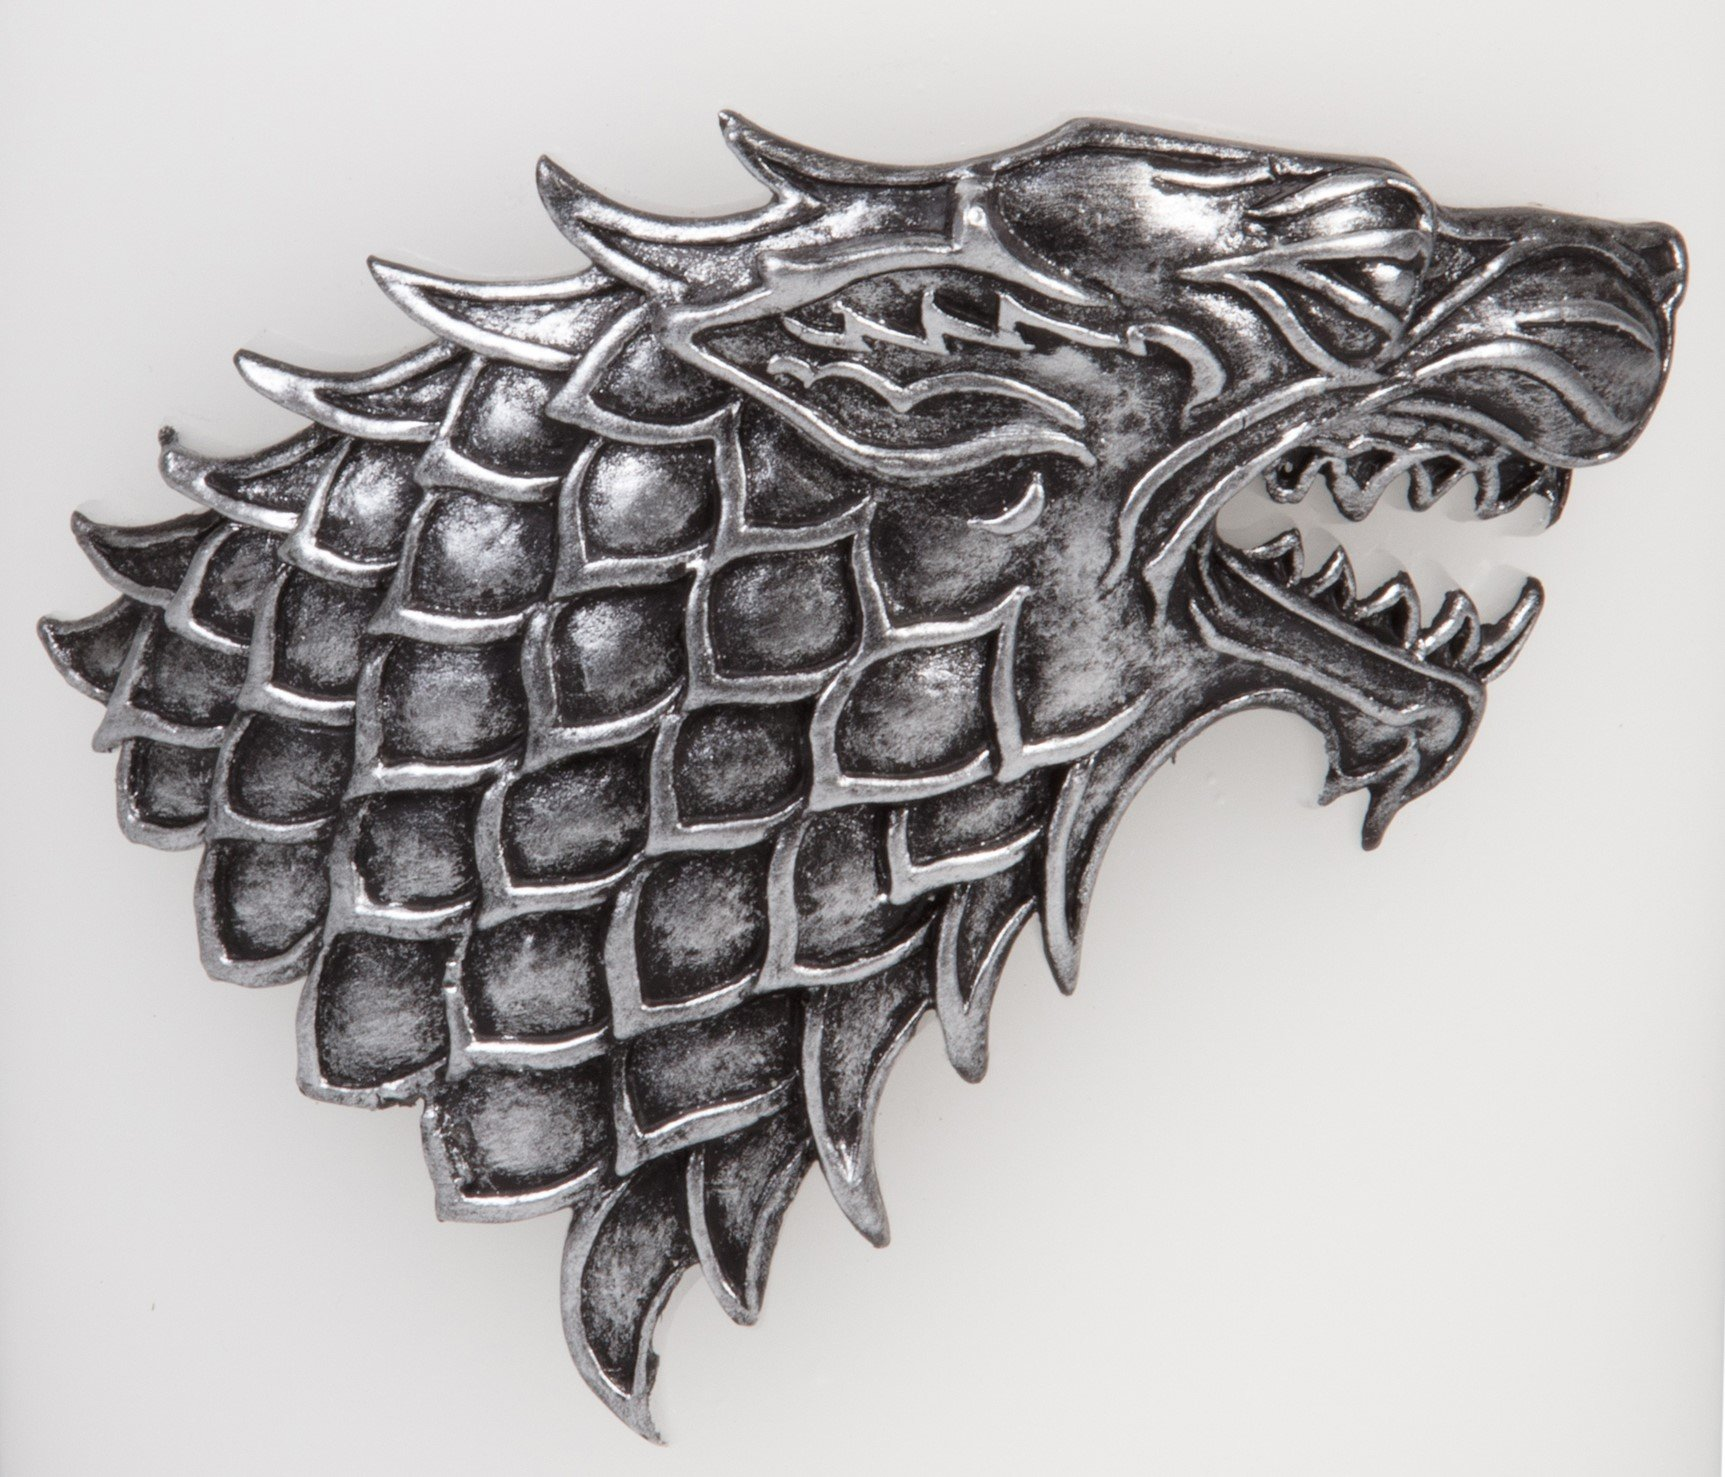 Game of Thrones Candle - Large House Stark Insignia Sculpted Pillar Candle - Perfect for GoT Fans - Unscented - 8''h by Game of Thrones (Image #3)